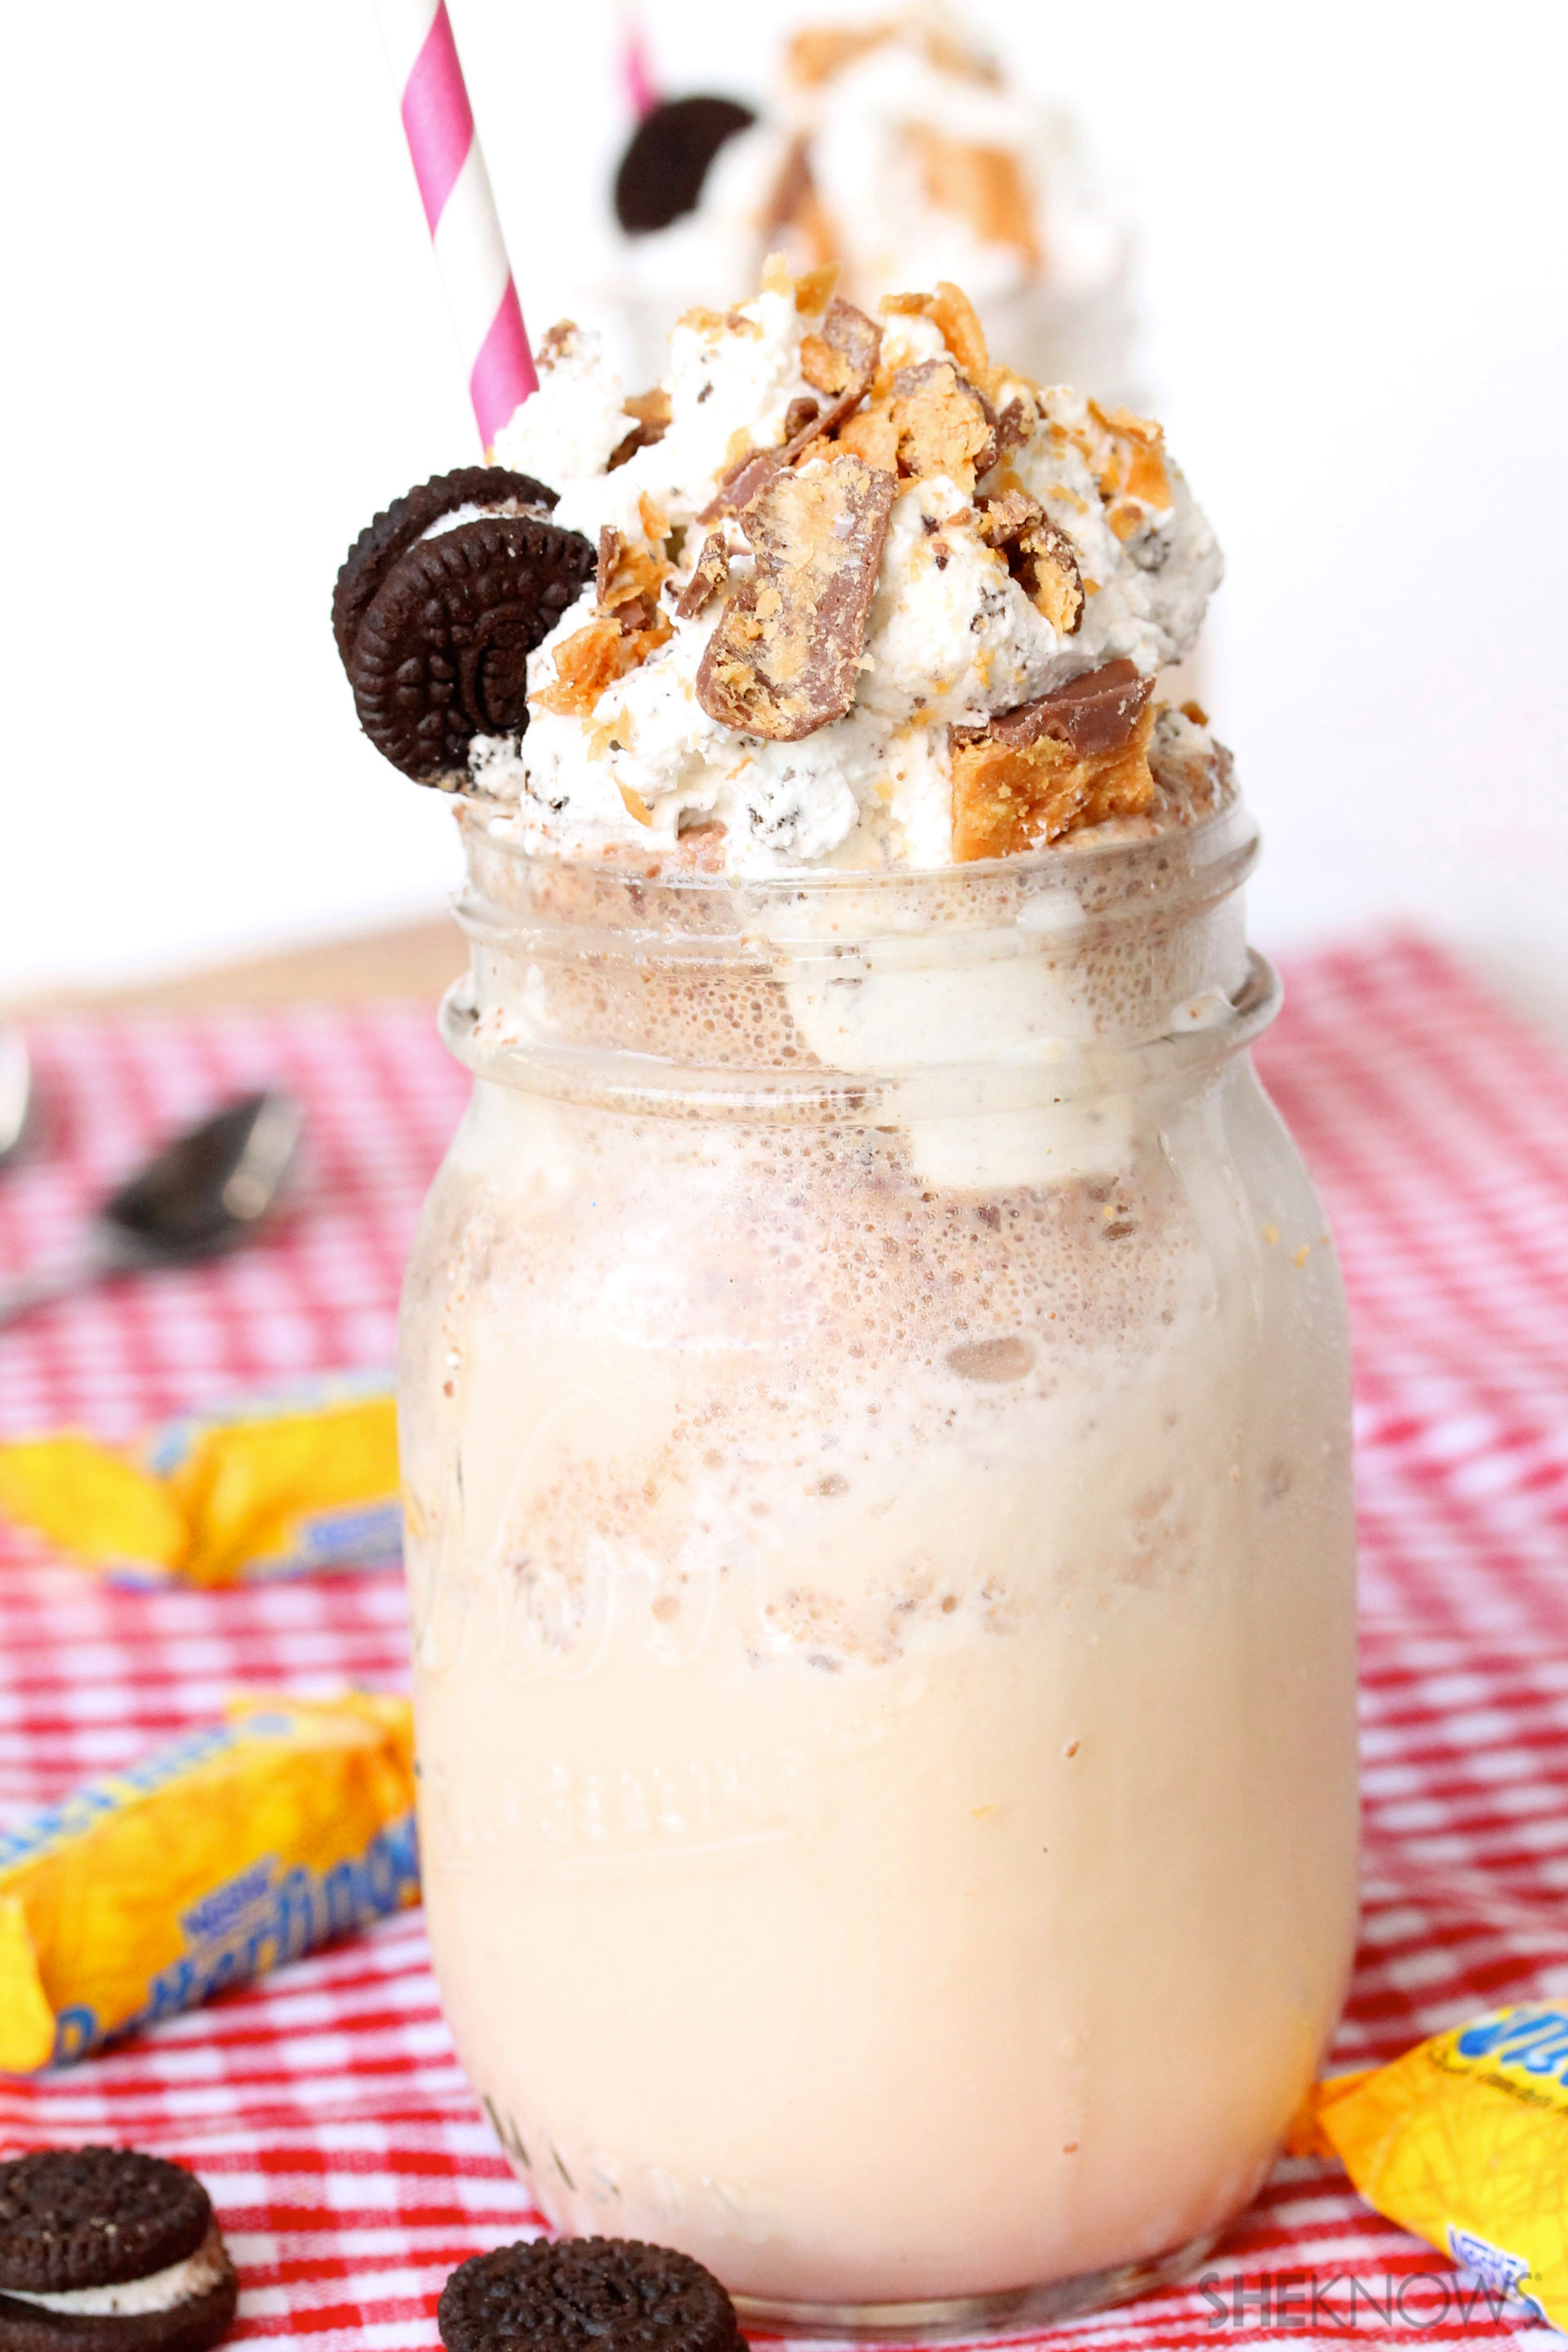 Add some crunch to your milkshake